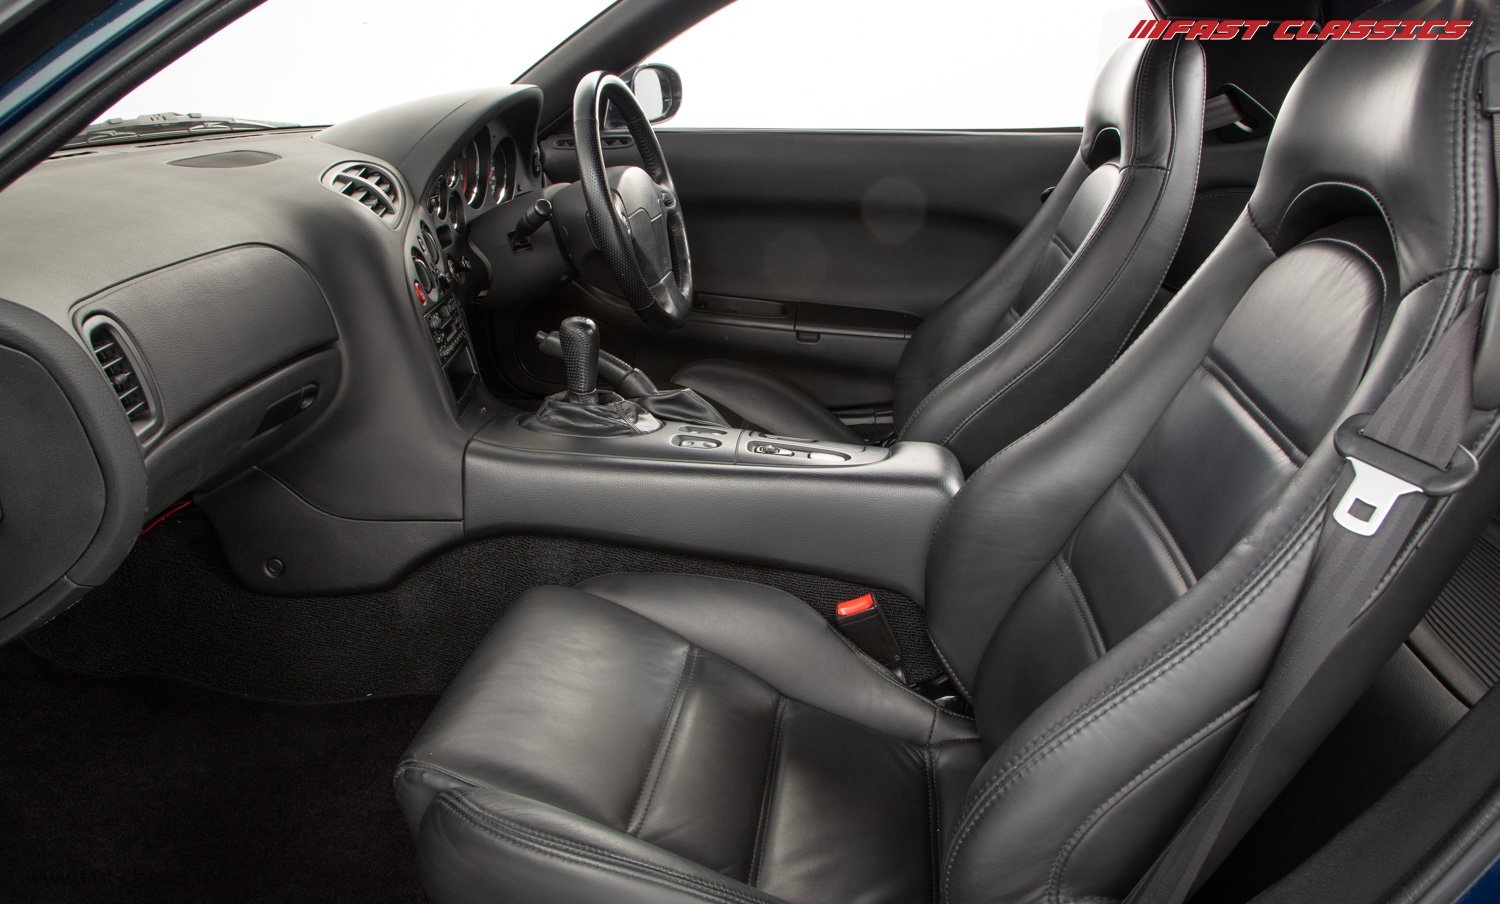 1993 MAZDA RX-7 FD // FAMILY OWNED // 26K MILES // 1 OF 210 UK DE For Sale (picture 15 of 23)